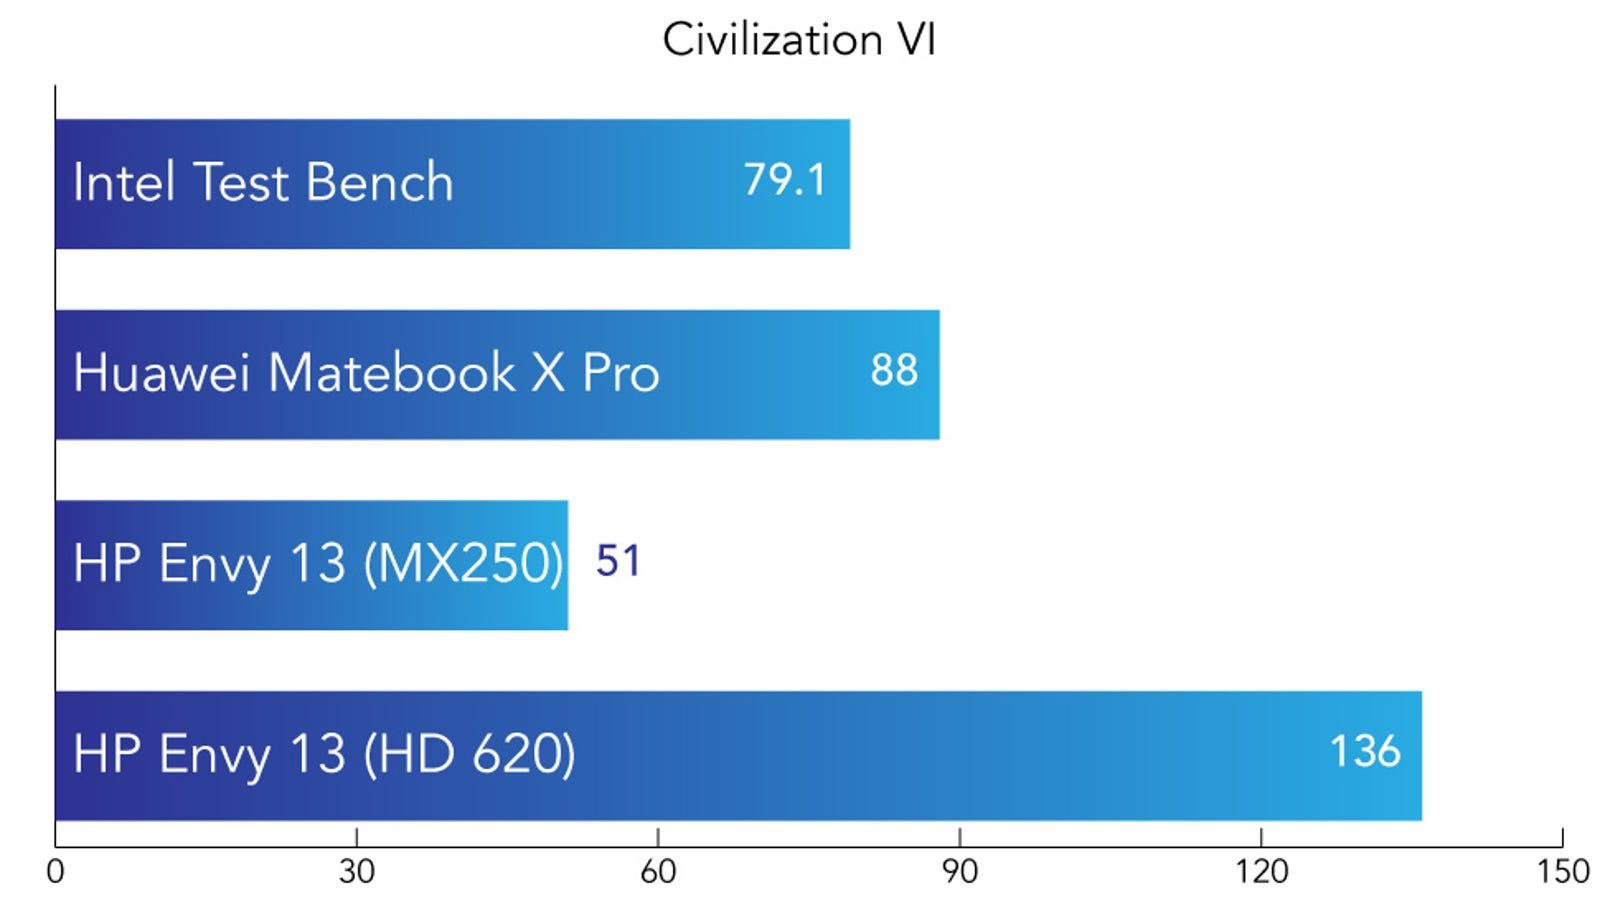 In Civilization VI we run the Graphic benchmark with the resolution set to 1080p and the graphics quality to High. The number represents the average time, in milliseconds, it takes to render each frame. Shorter is better.